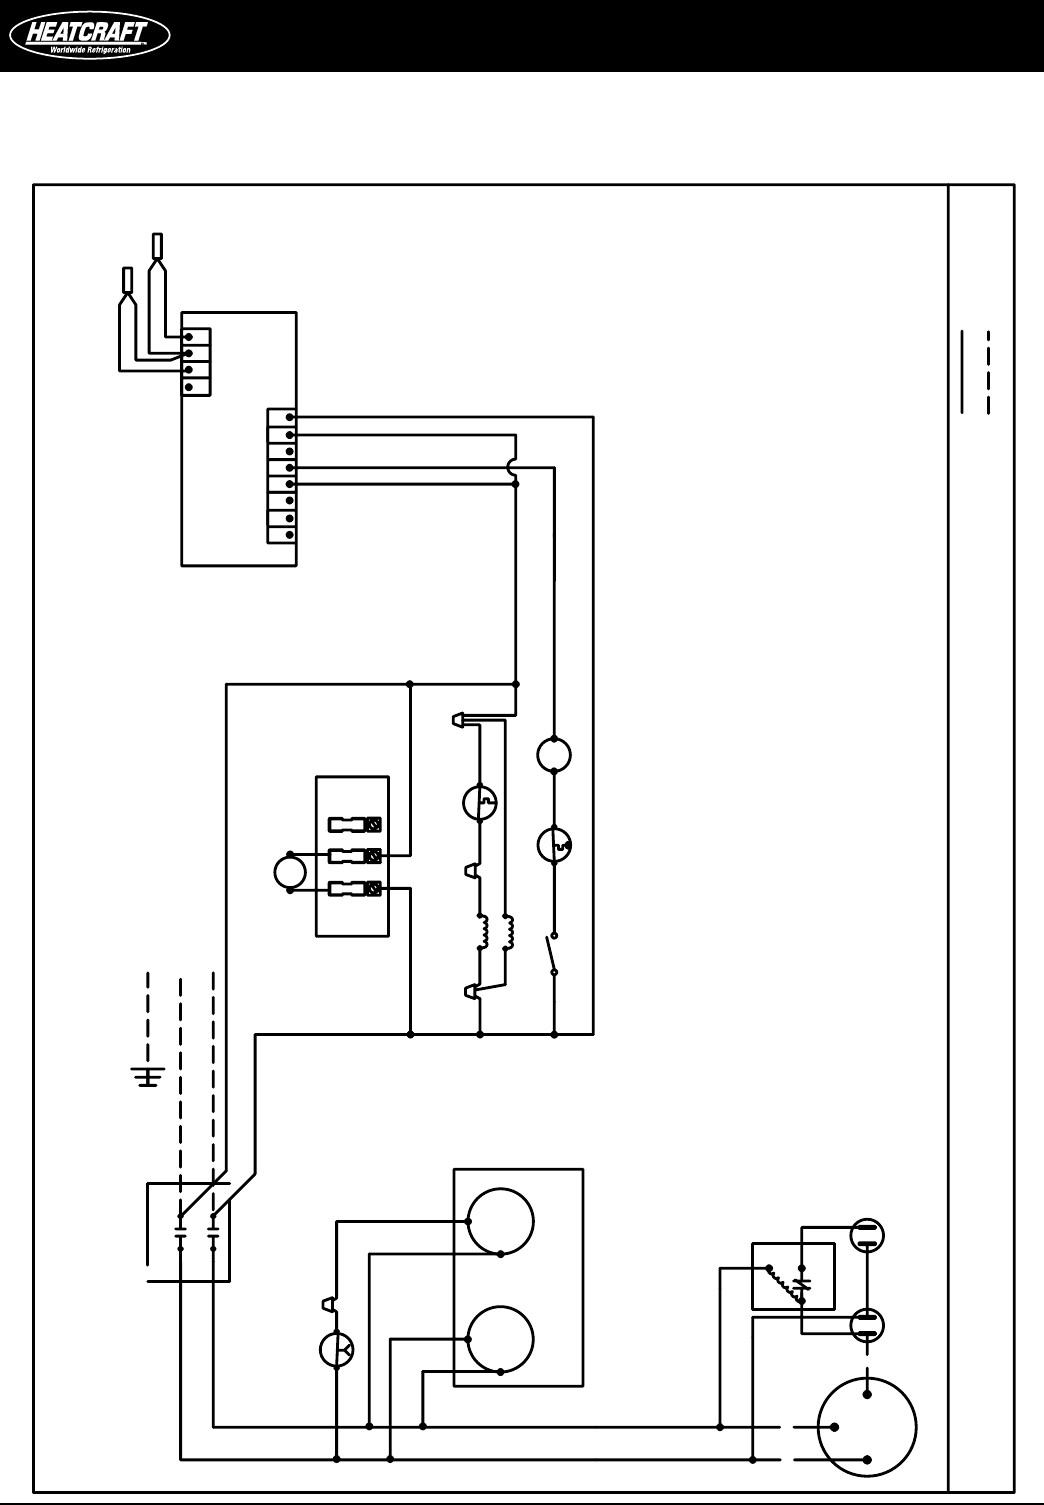 Heatcraft Walk In Freezer Wiring Diagram